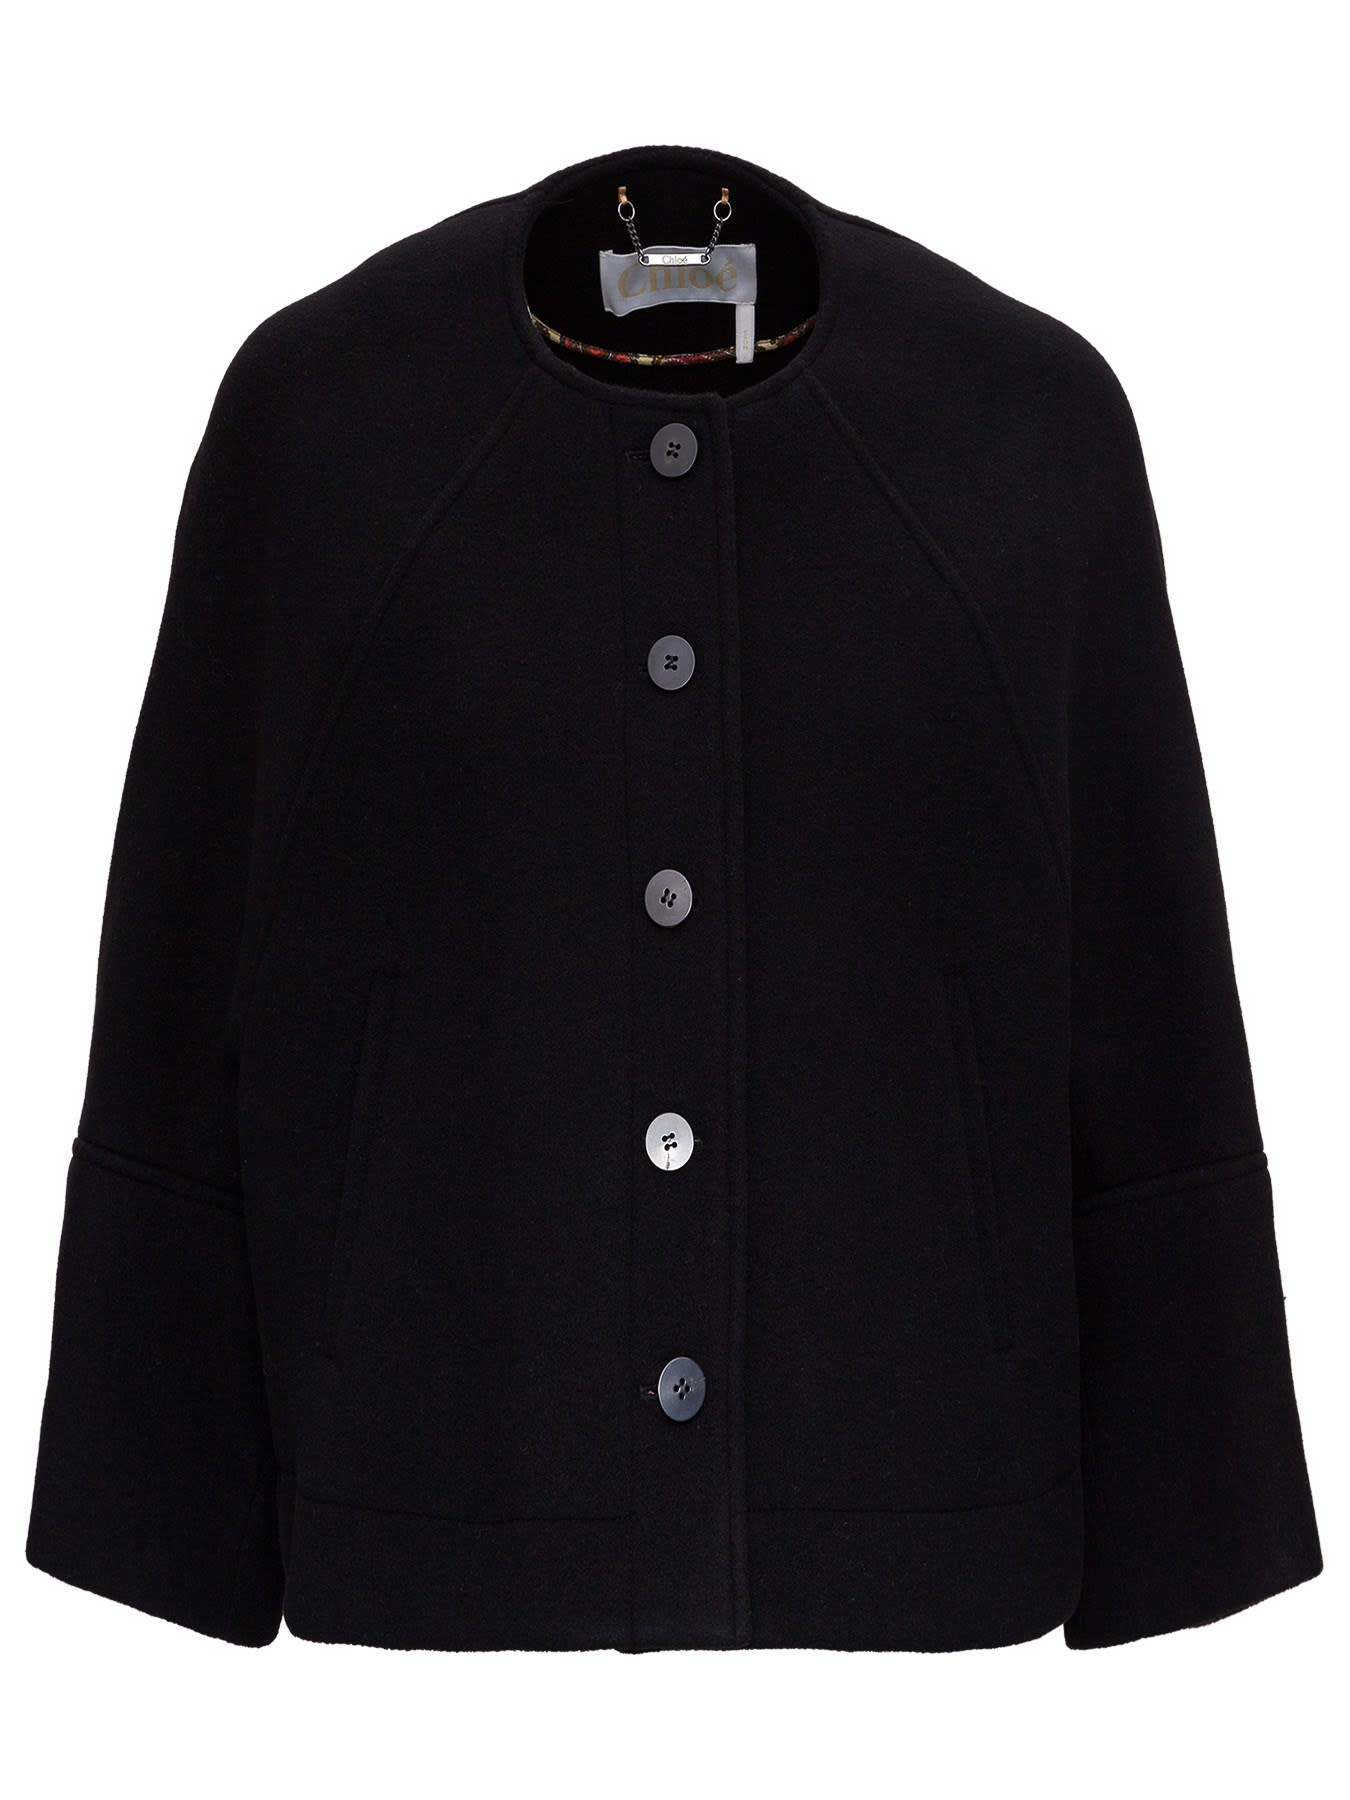 Chloé BOXY JACKET IN WOOL